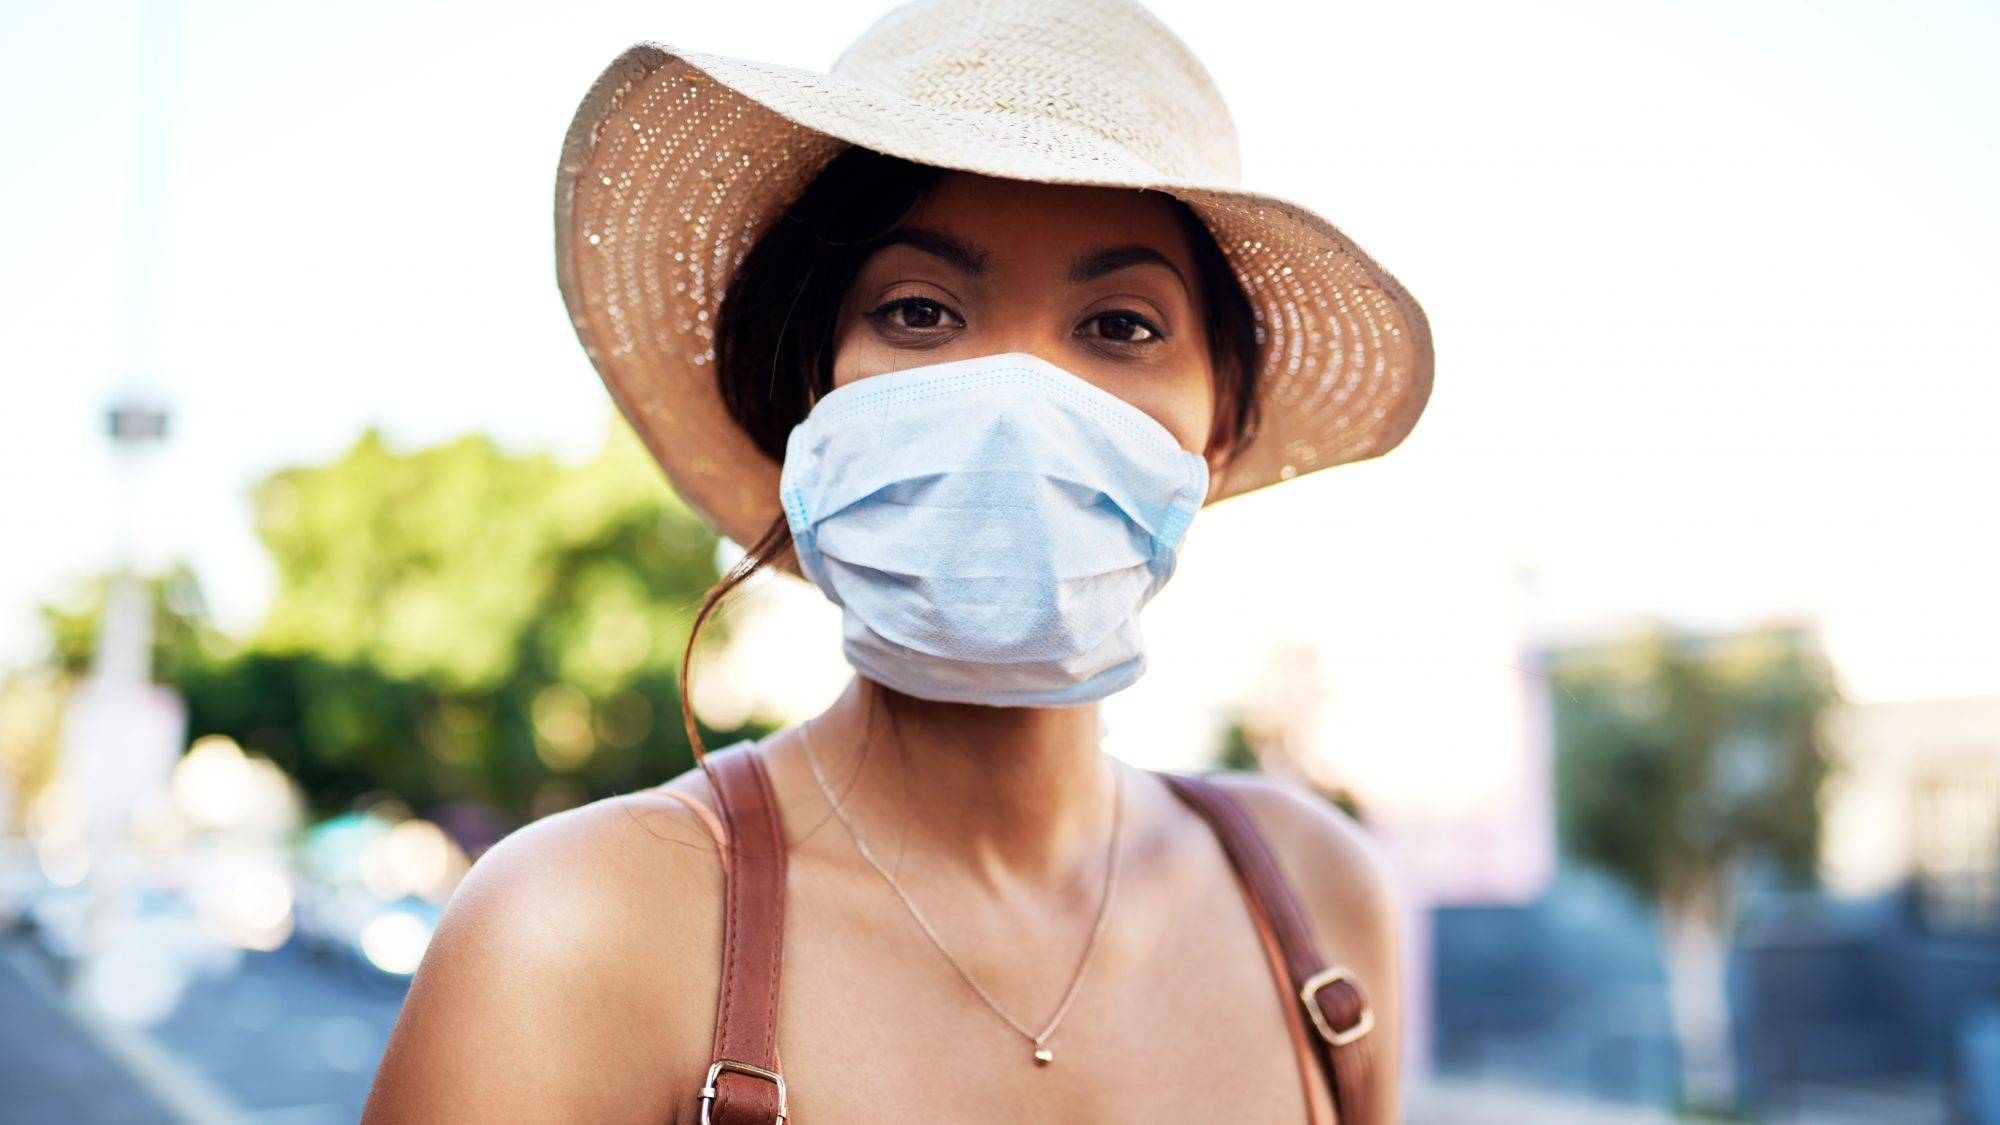 safe-practices-coronavirus: woman with face mask and hat